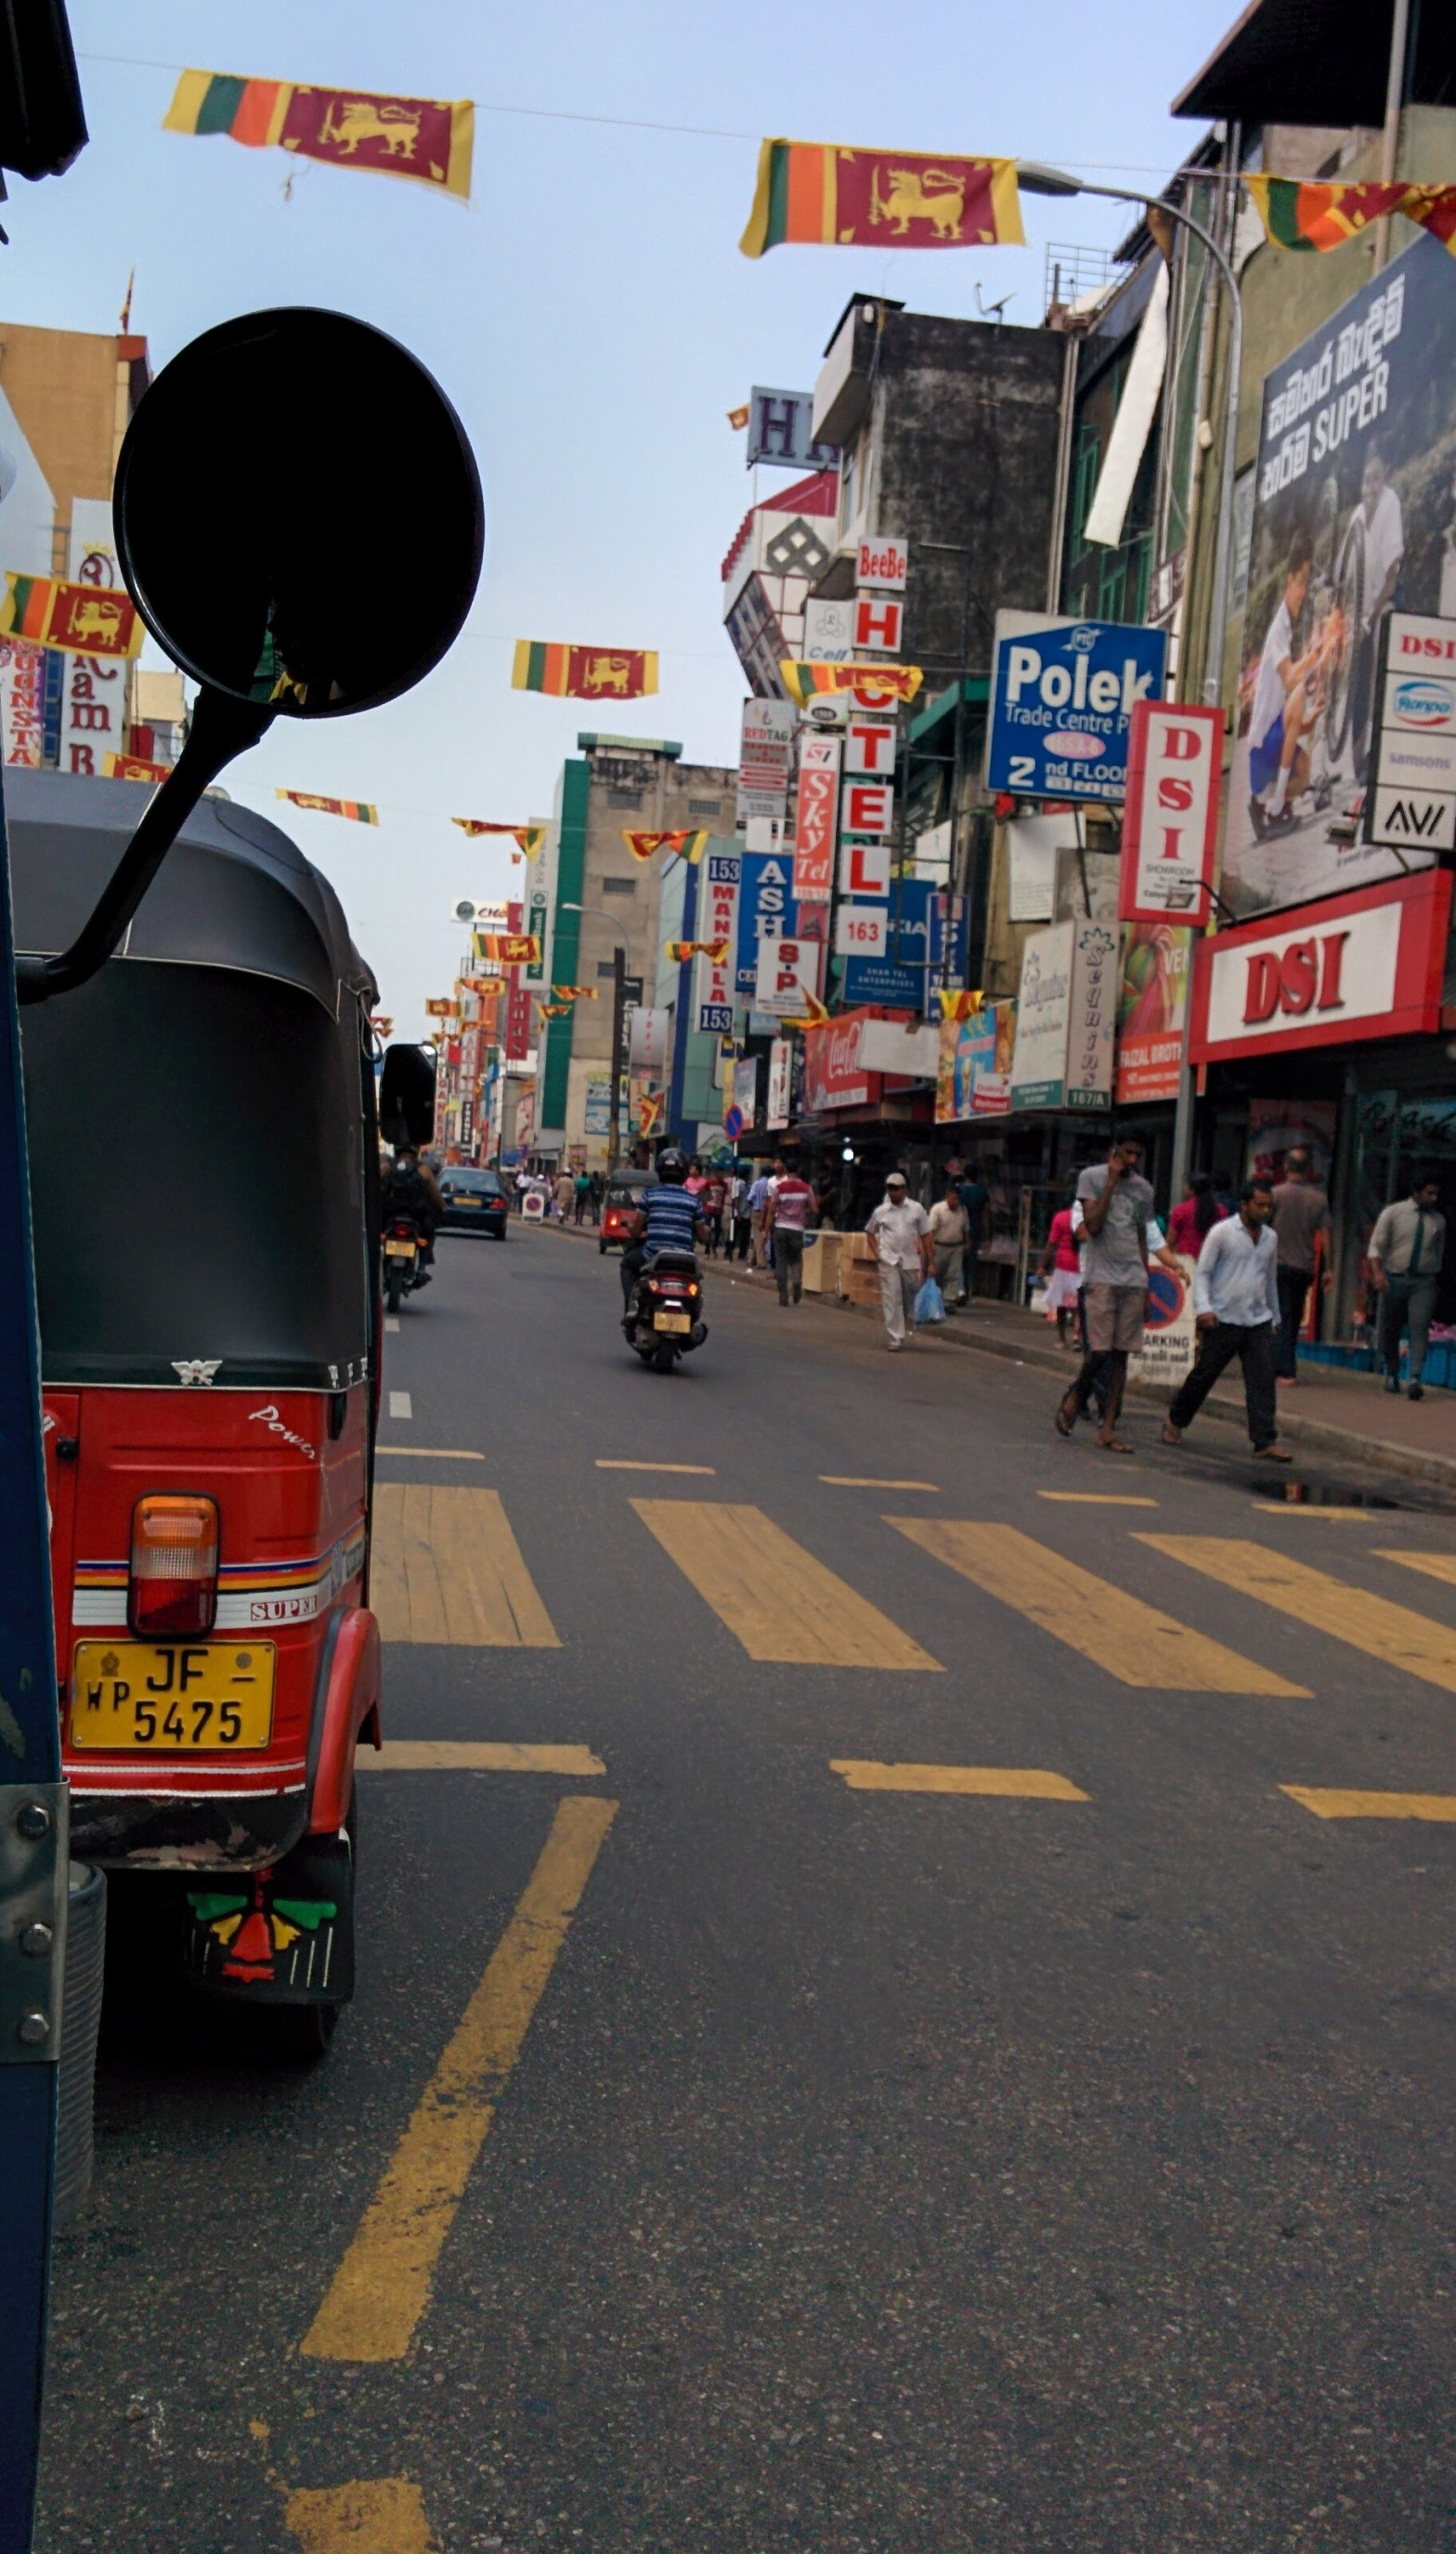 View from a tuk-tuk in Sri Lanka | Image subject to copyright